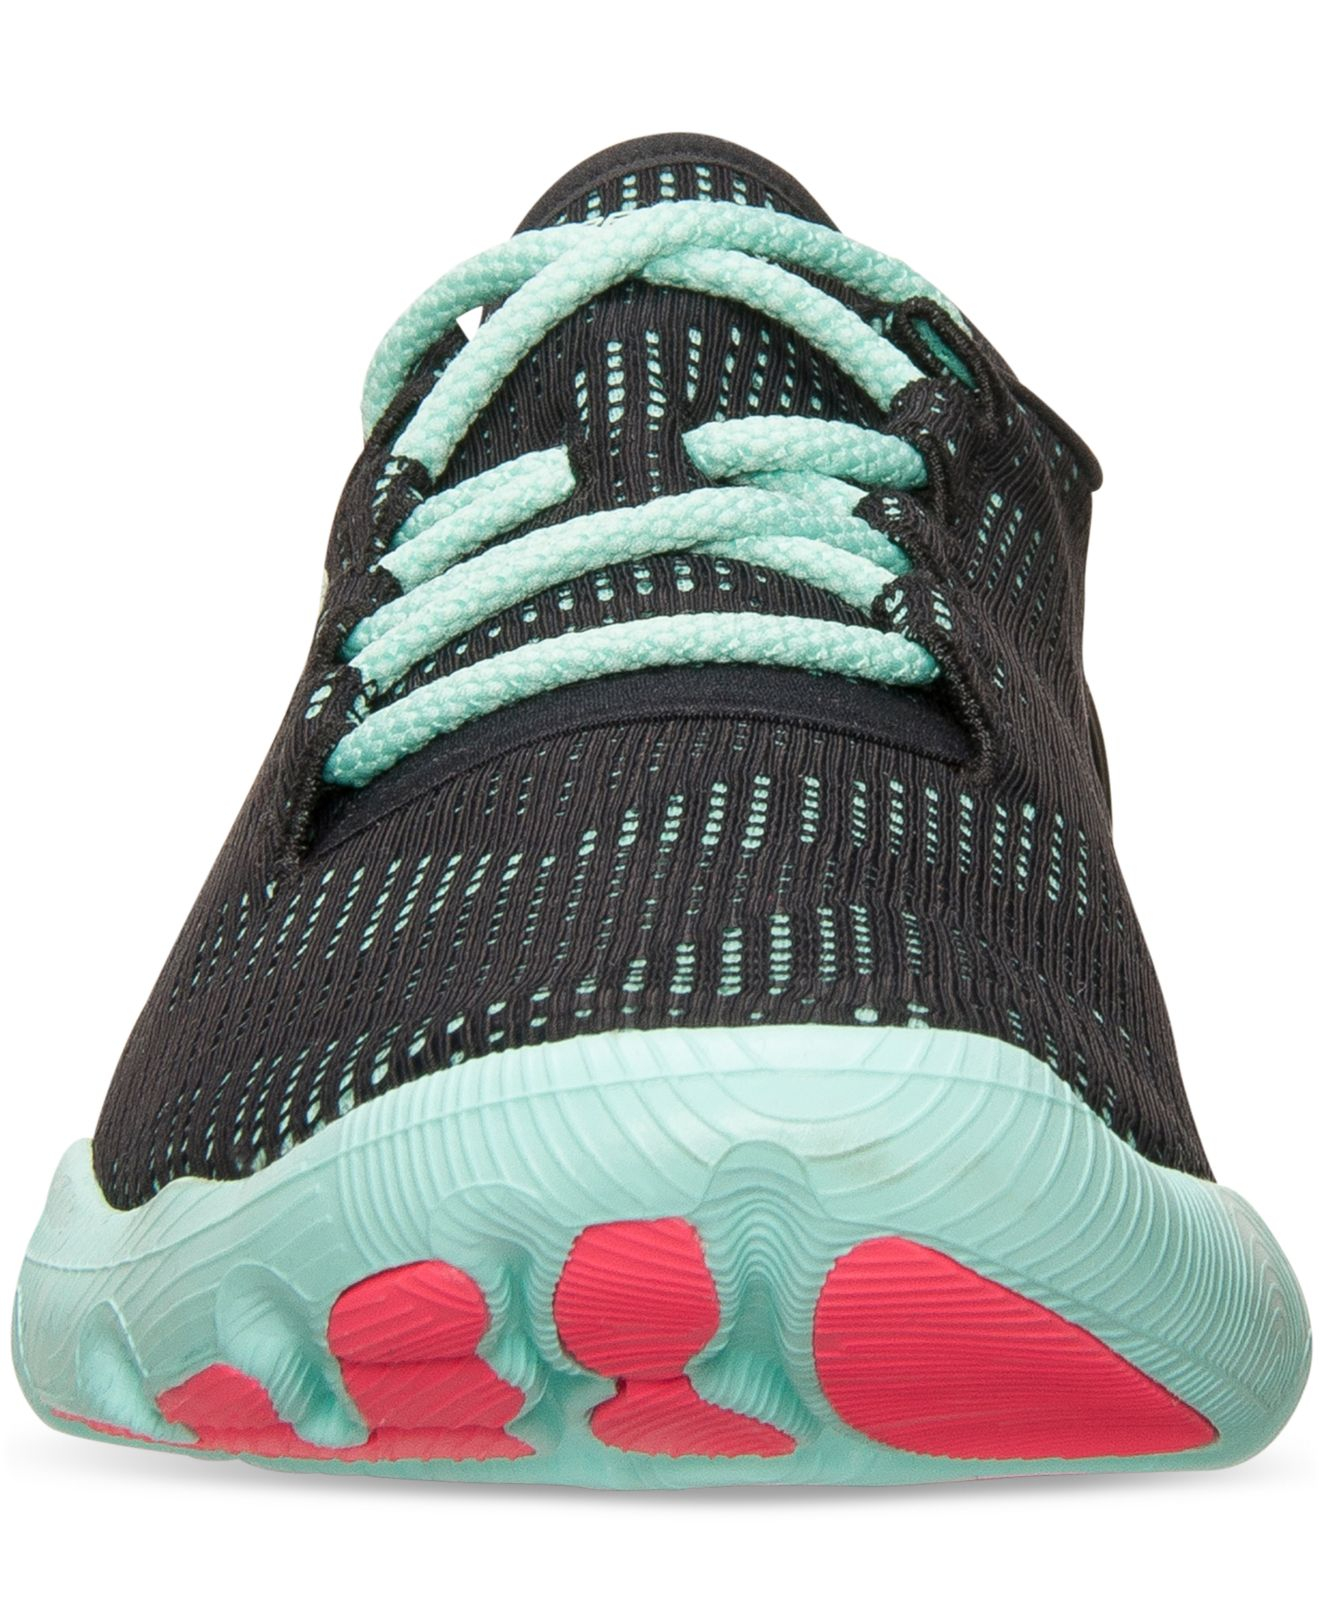 Lyst - Under Armour Women S Speedform Apollo Vent Running Sneakers From  Finish Line in Green 6f94d0b5b